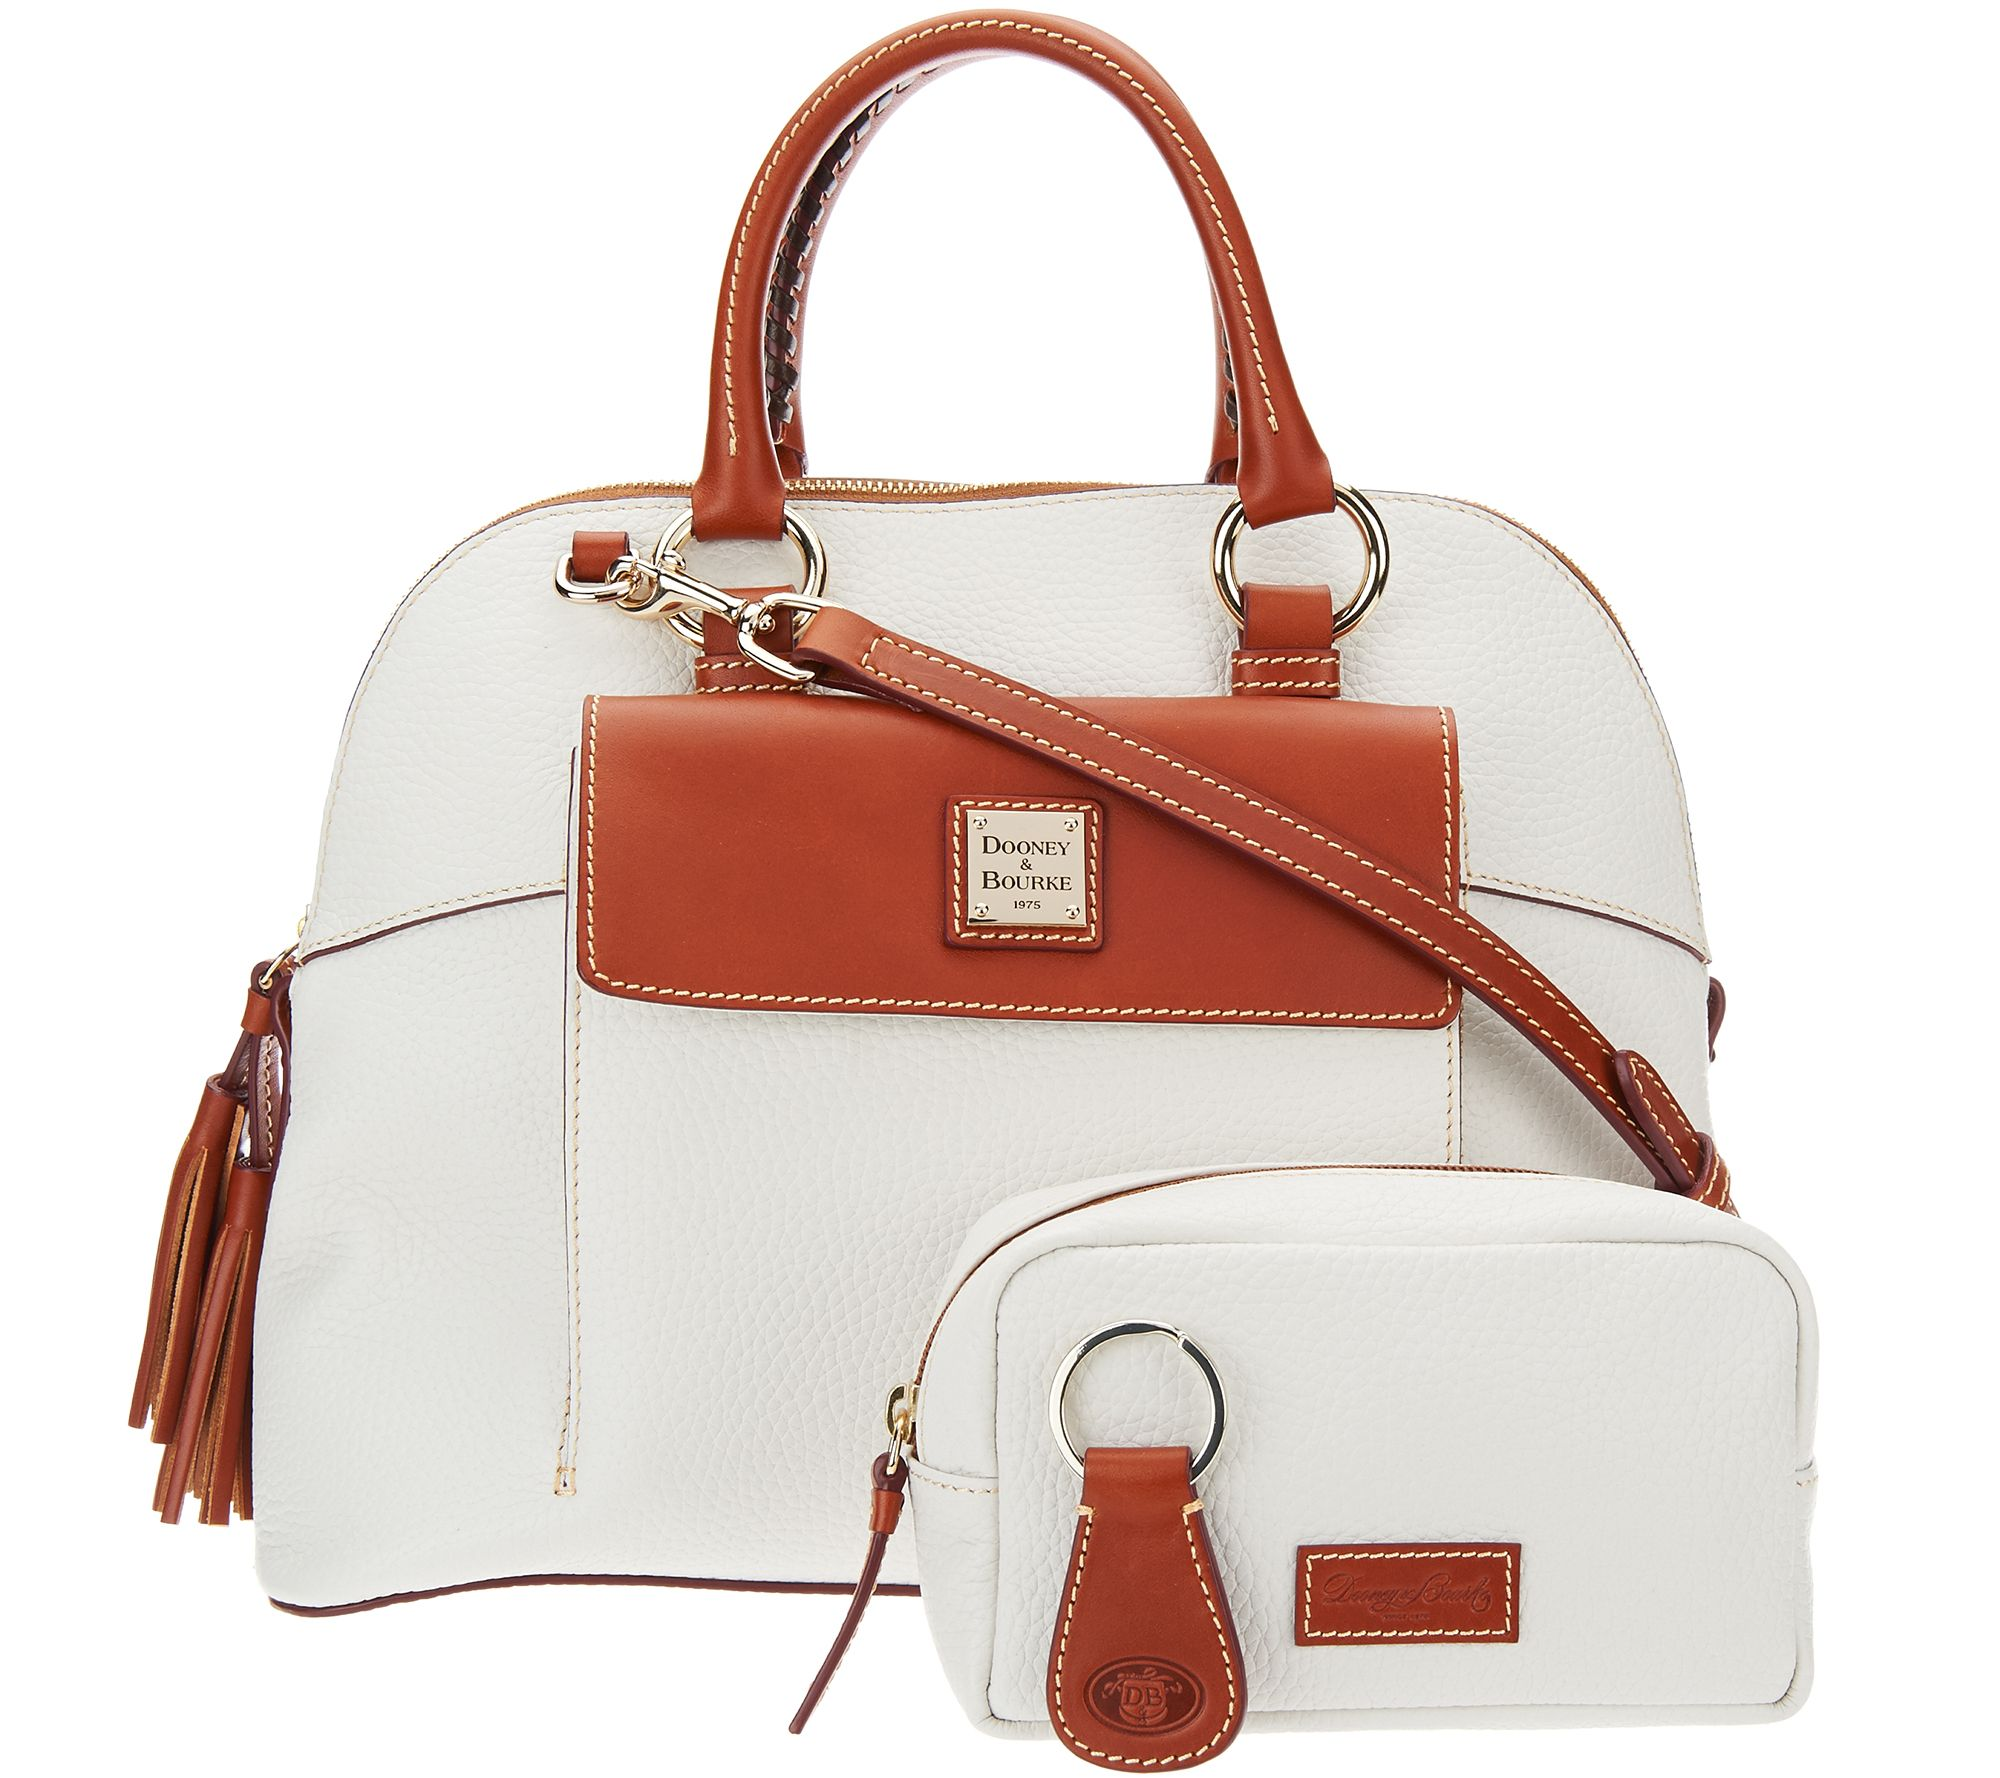 Dooney Bourke Pebble Leather Aubrey Satchel With Accessories Page 1 Qvc